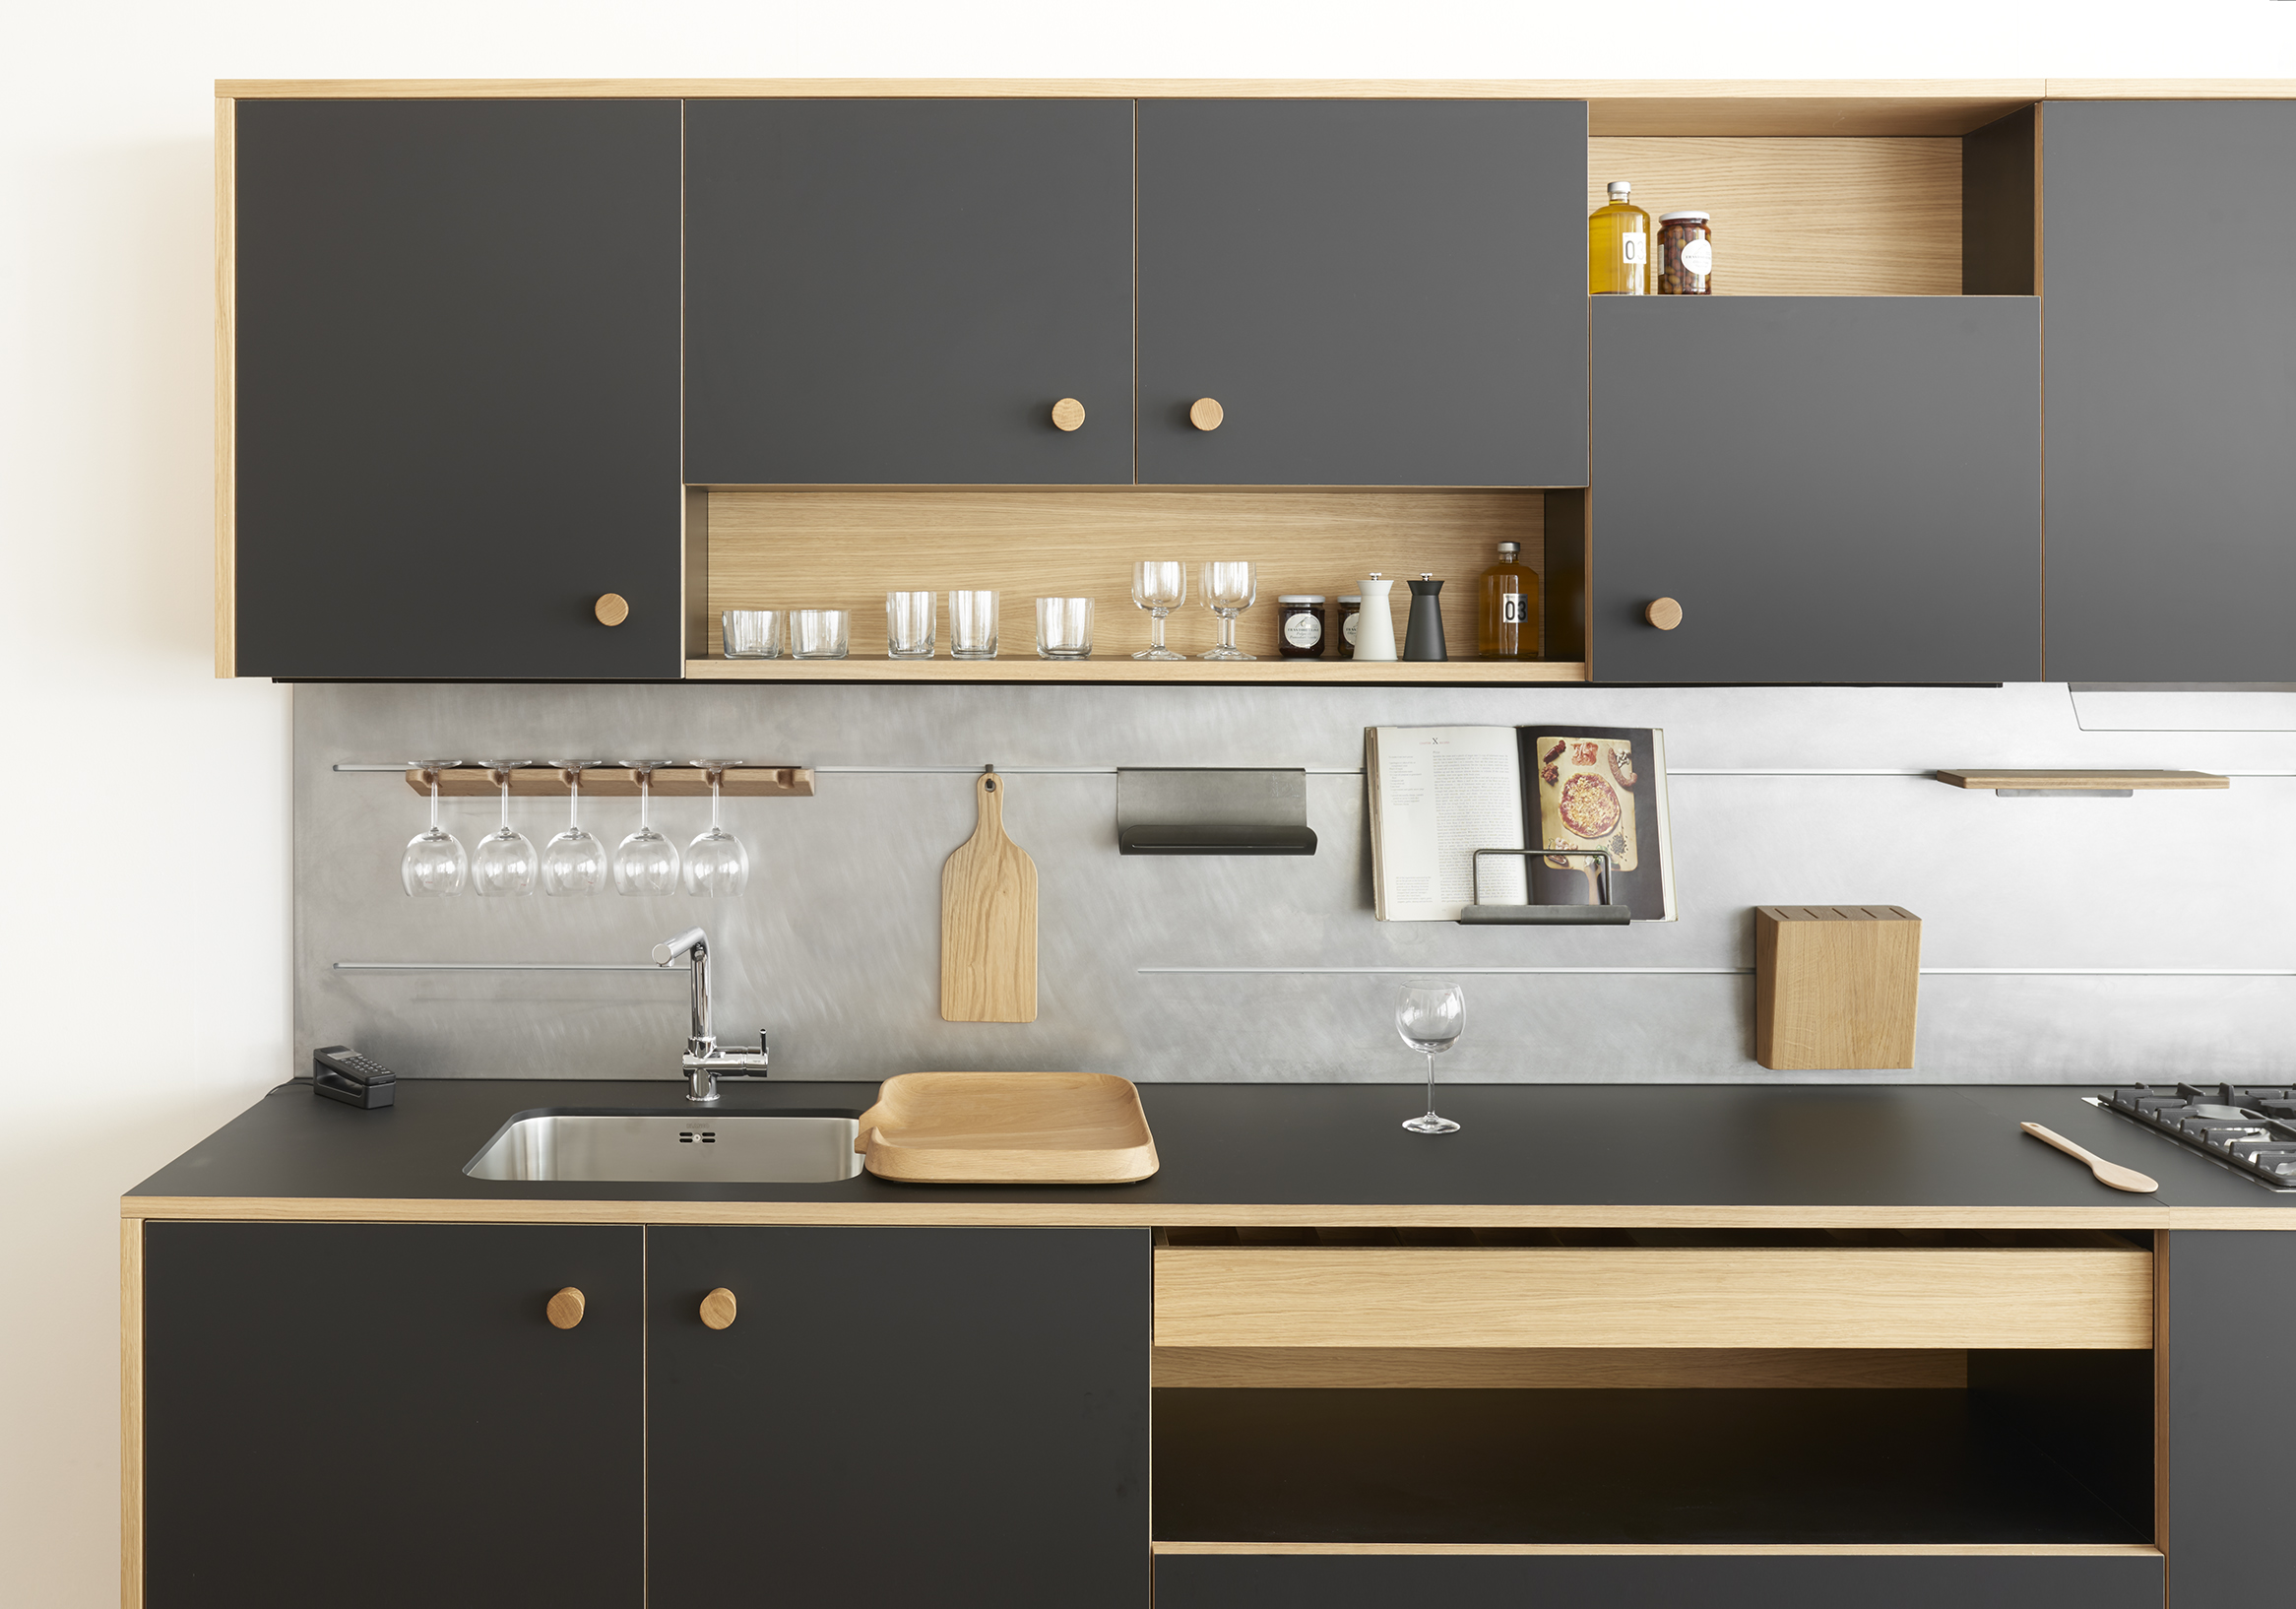 Cucina lepic di schiffini design jasper morrison for Muebles de cocina kitchen